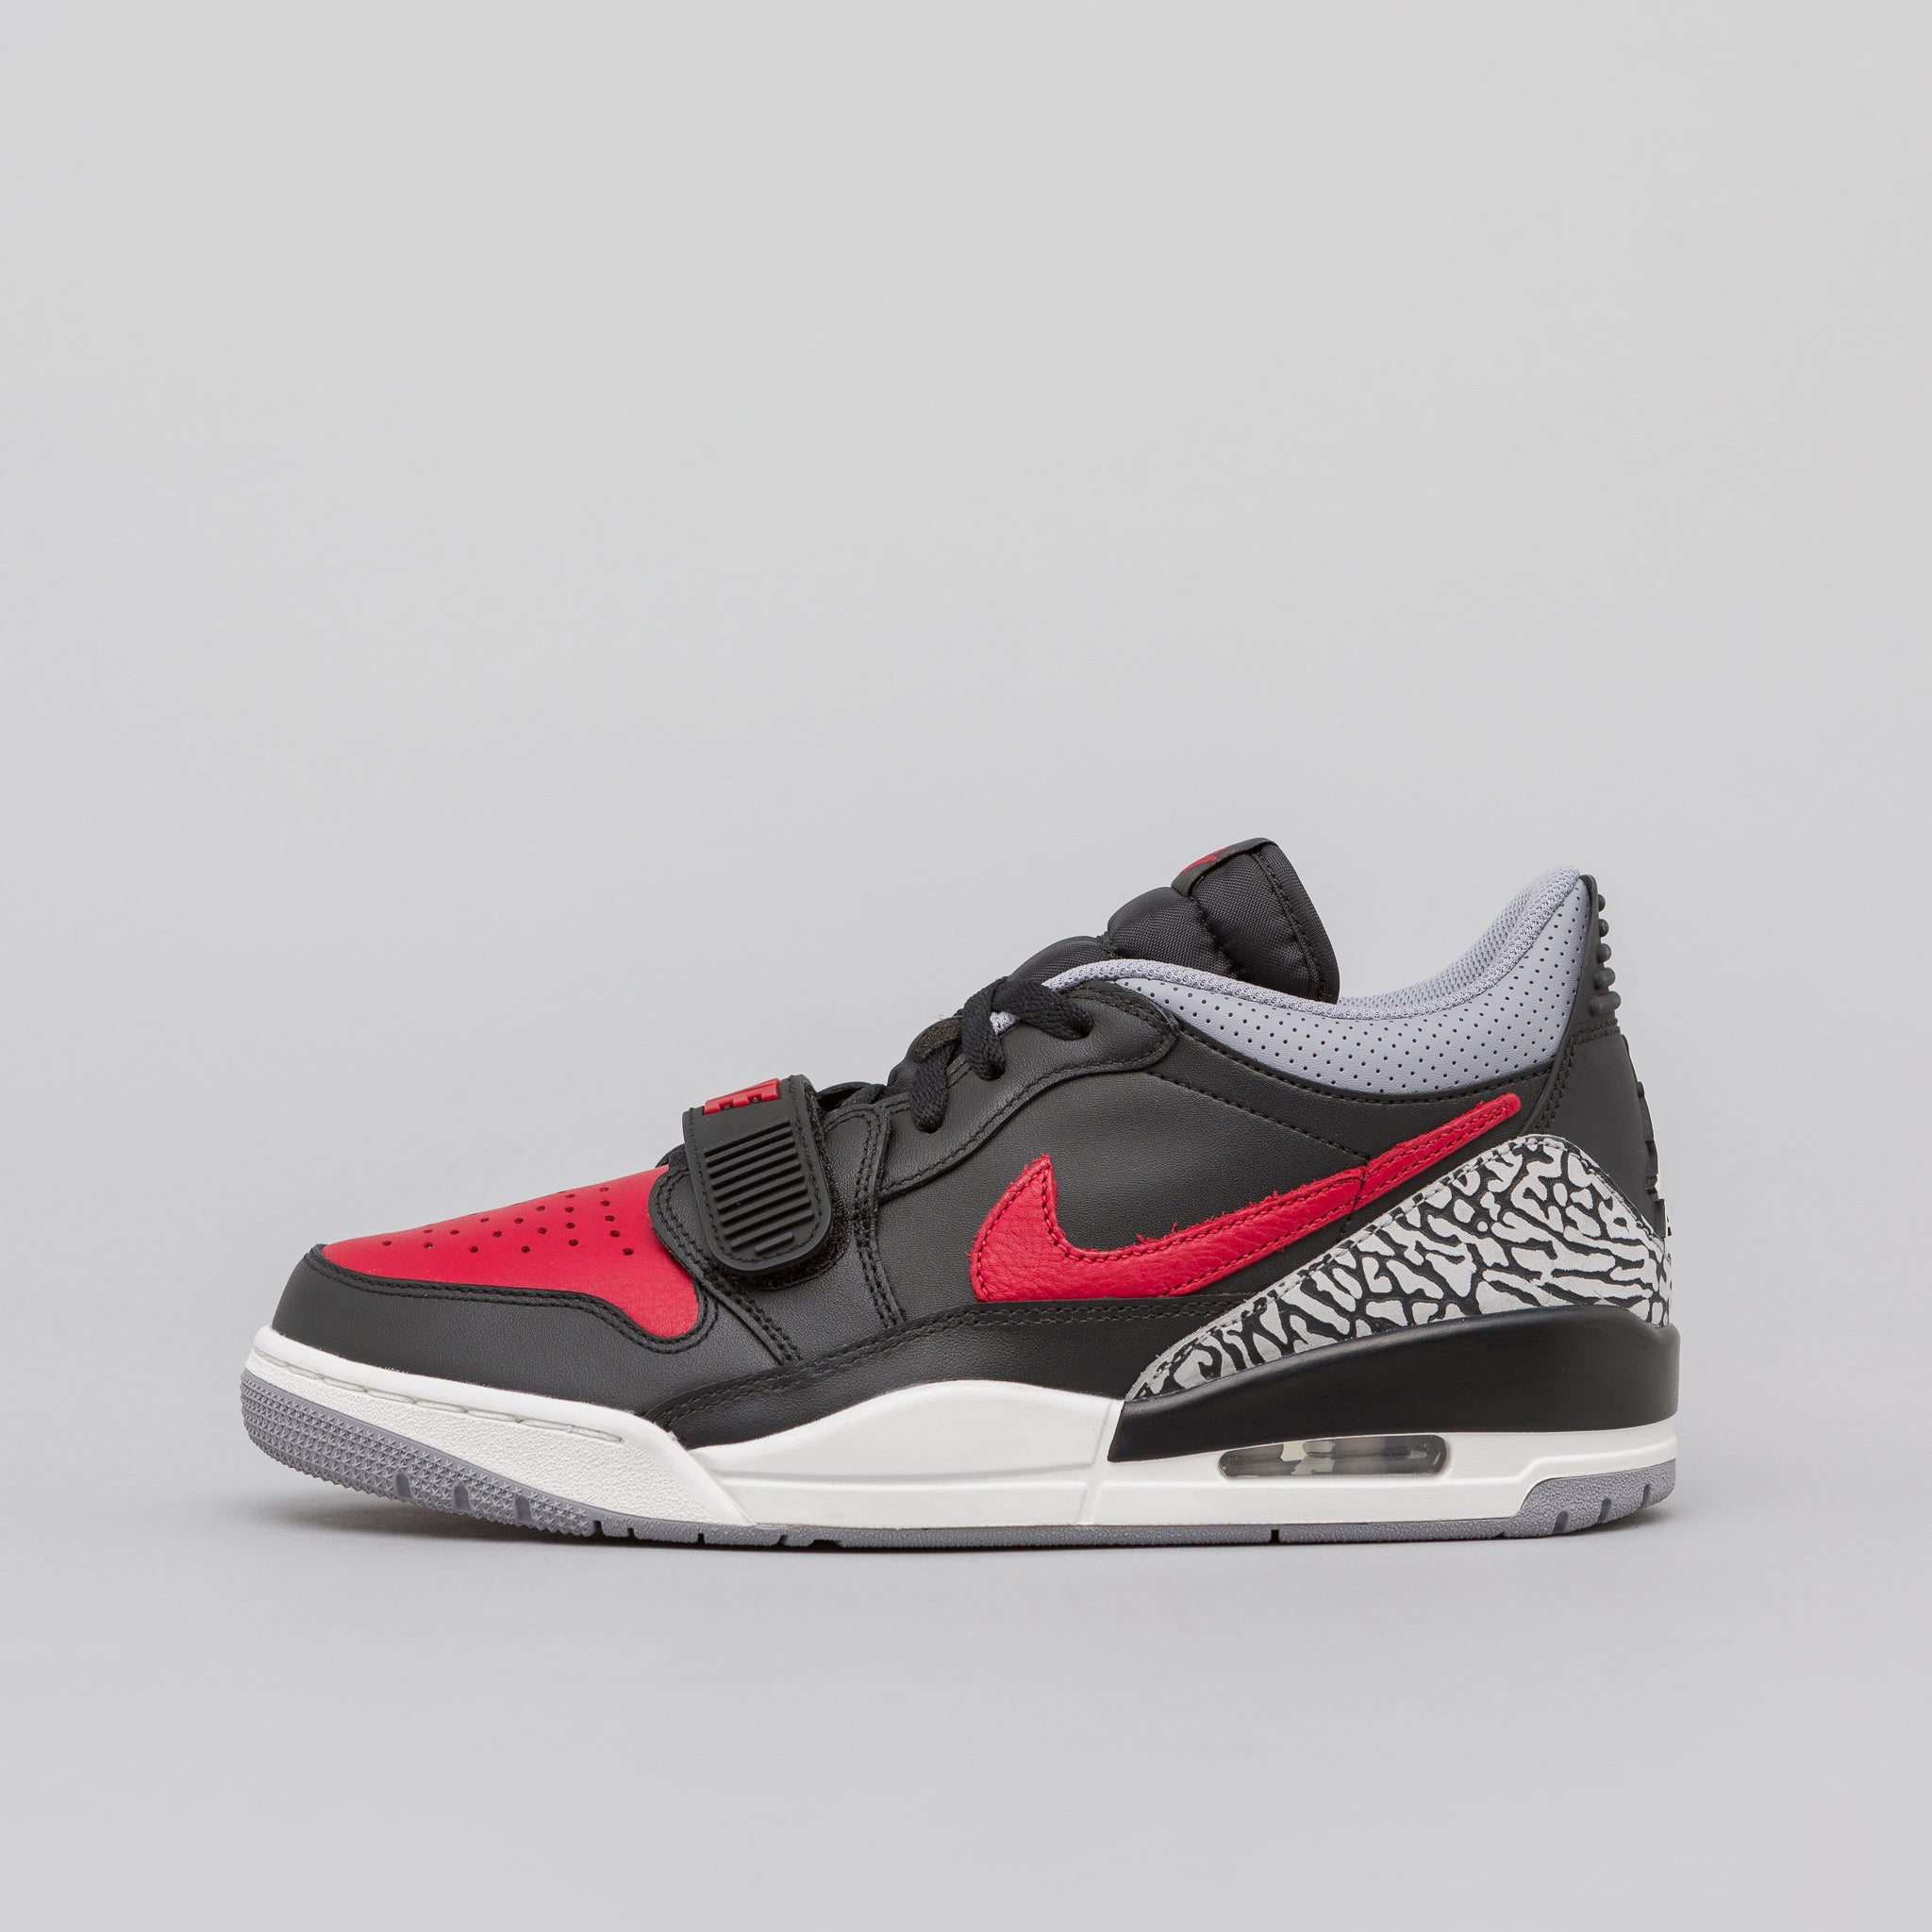 buy online 44b3a eced6 Air Jordan Legacy 312 Low in Black Varsity Red